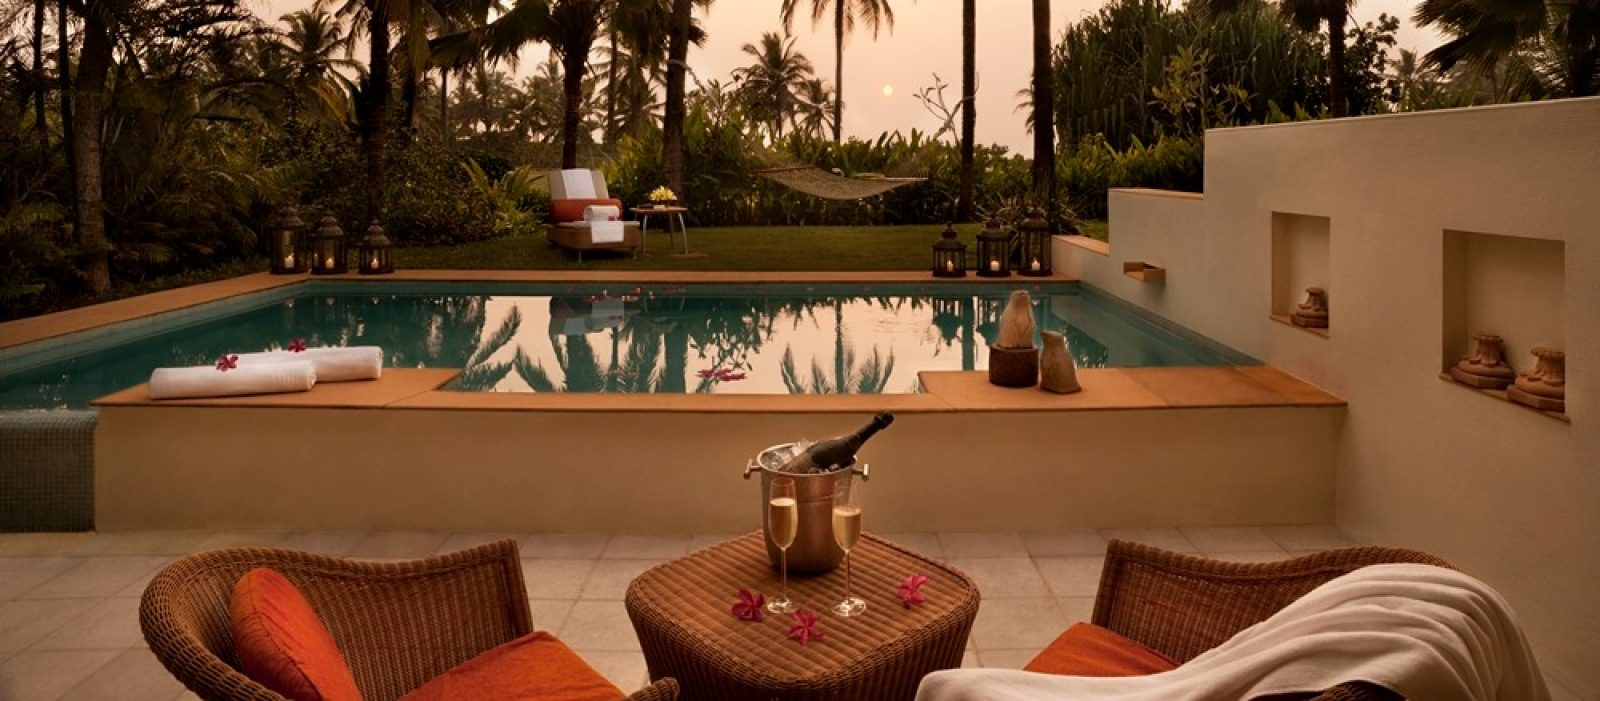 Taj Exotica Goa Private Plunge pool 5 star accommodation India India Tours and Travel Specialists Goa getaways India